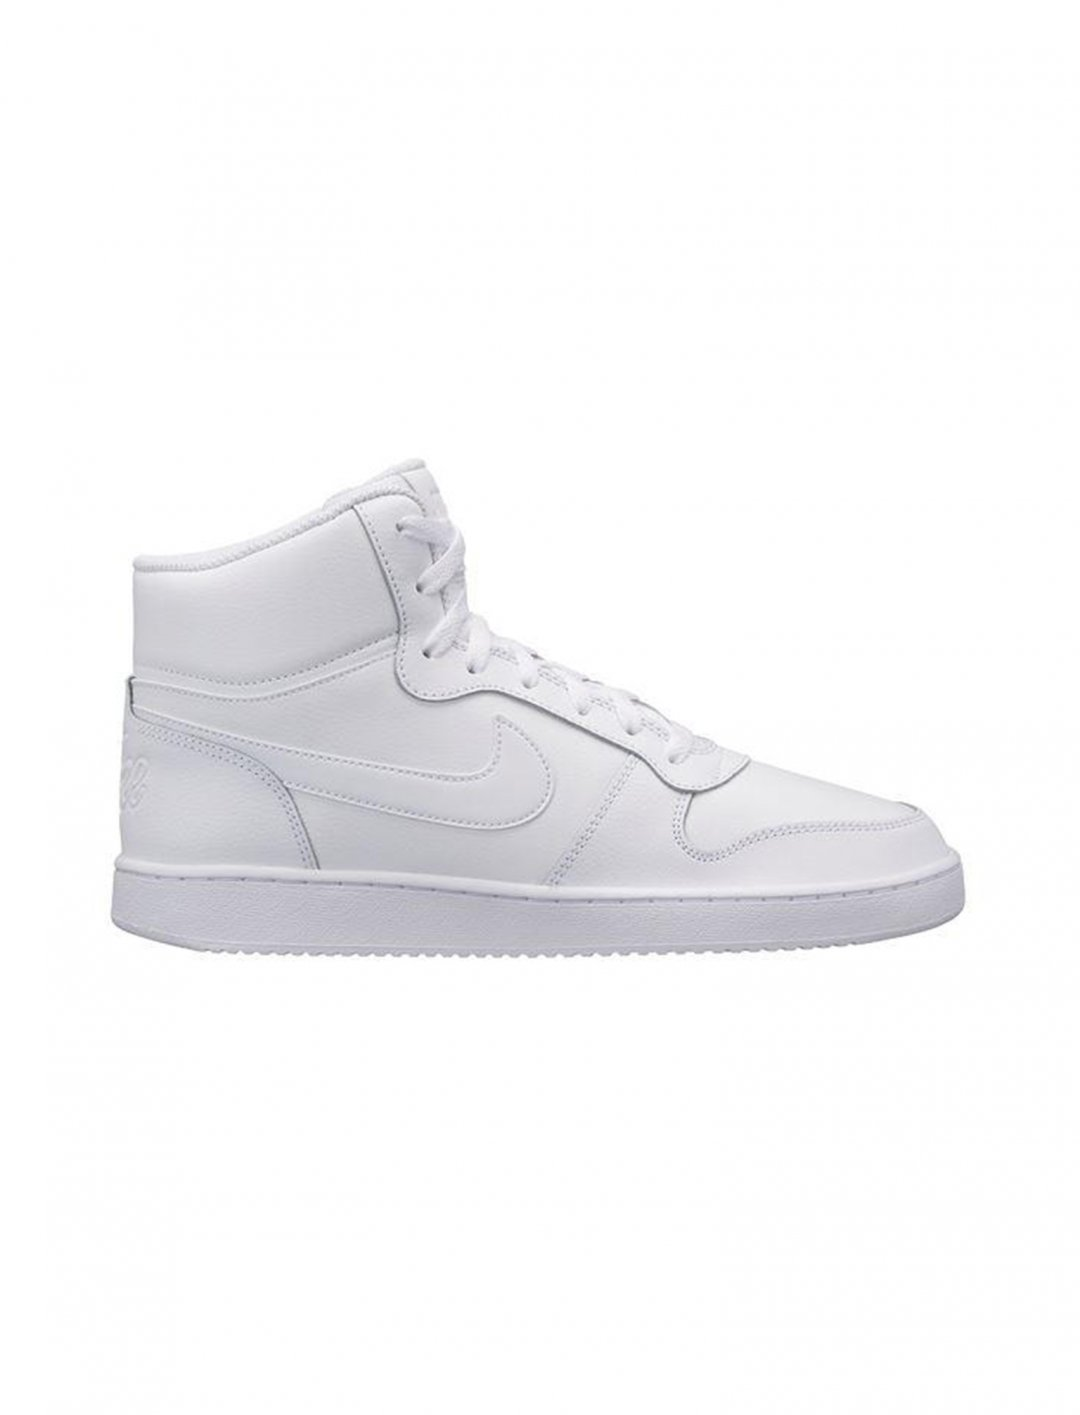 "Nike Hi Tops {""id"":12,""product_section_id"":1,""name"":""Shoes"",""order"":12} Nike"